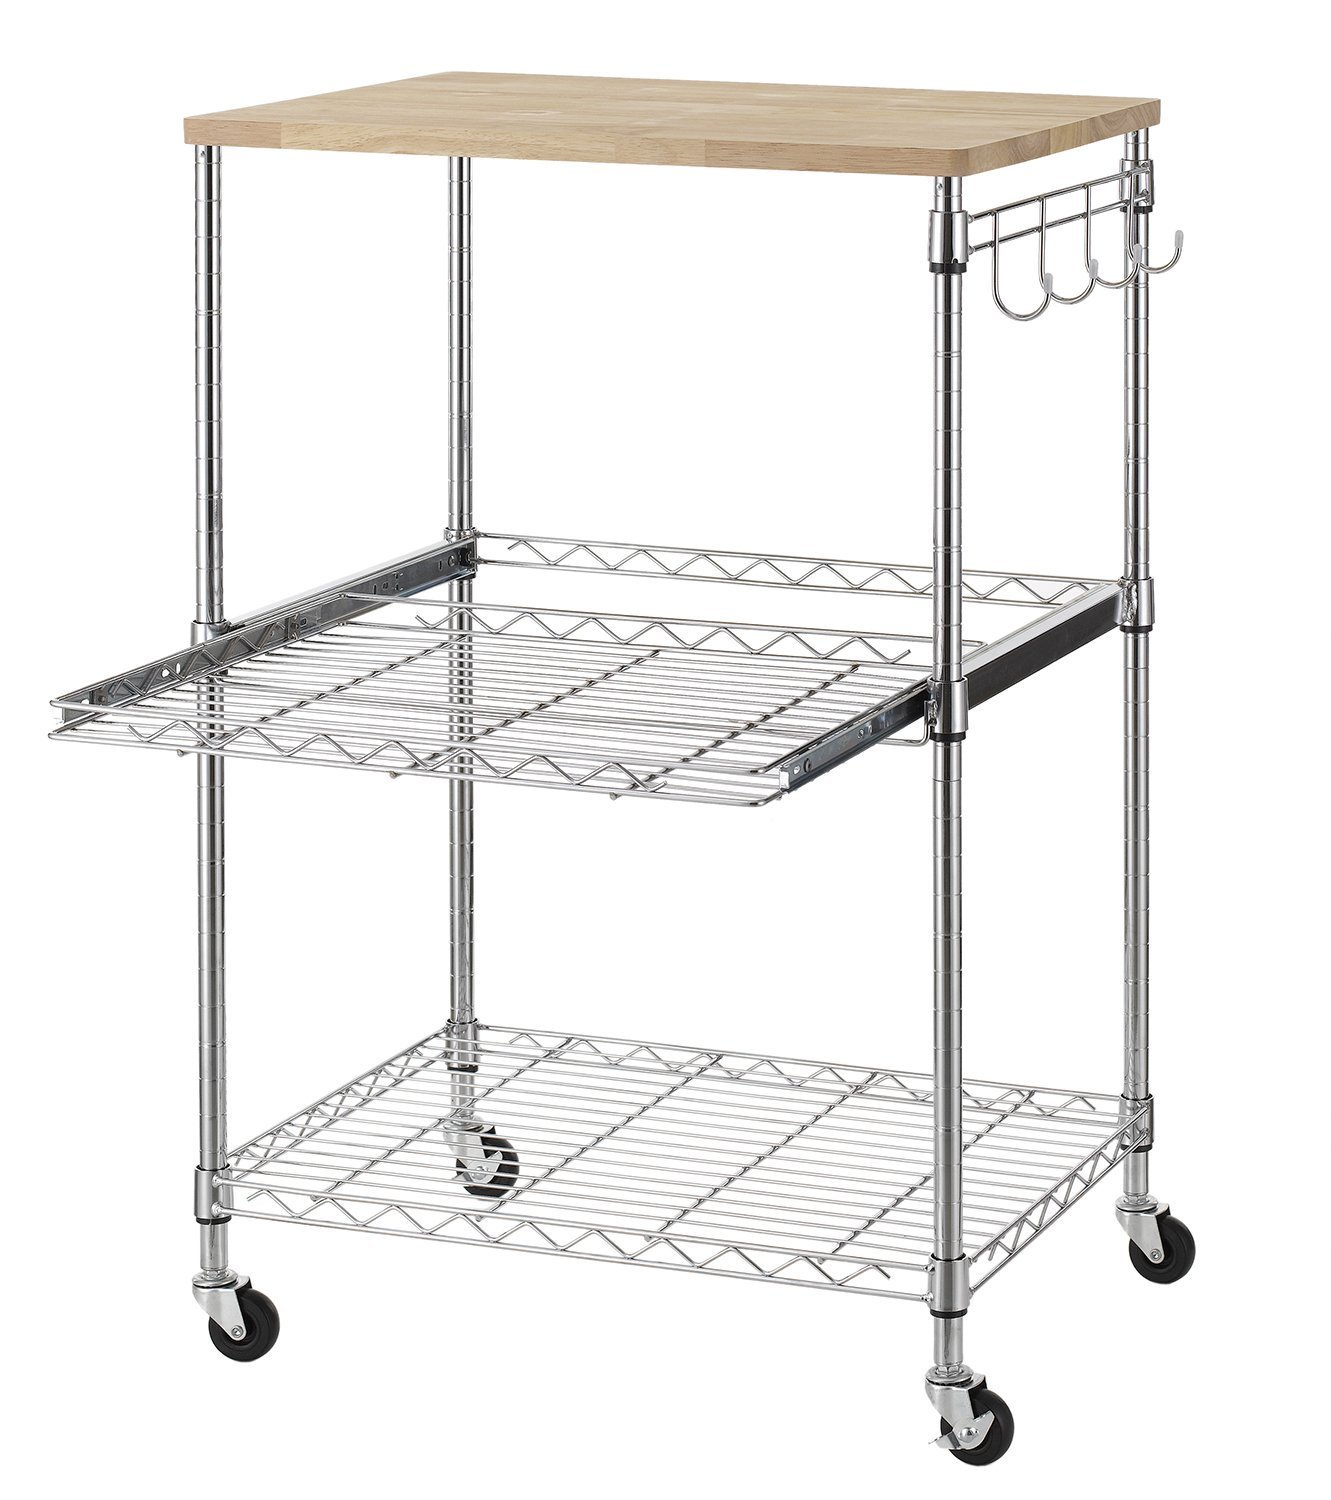 Best Rated In Kitchen Islands & Carts & Helpful Customer